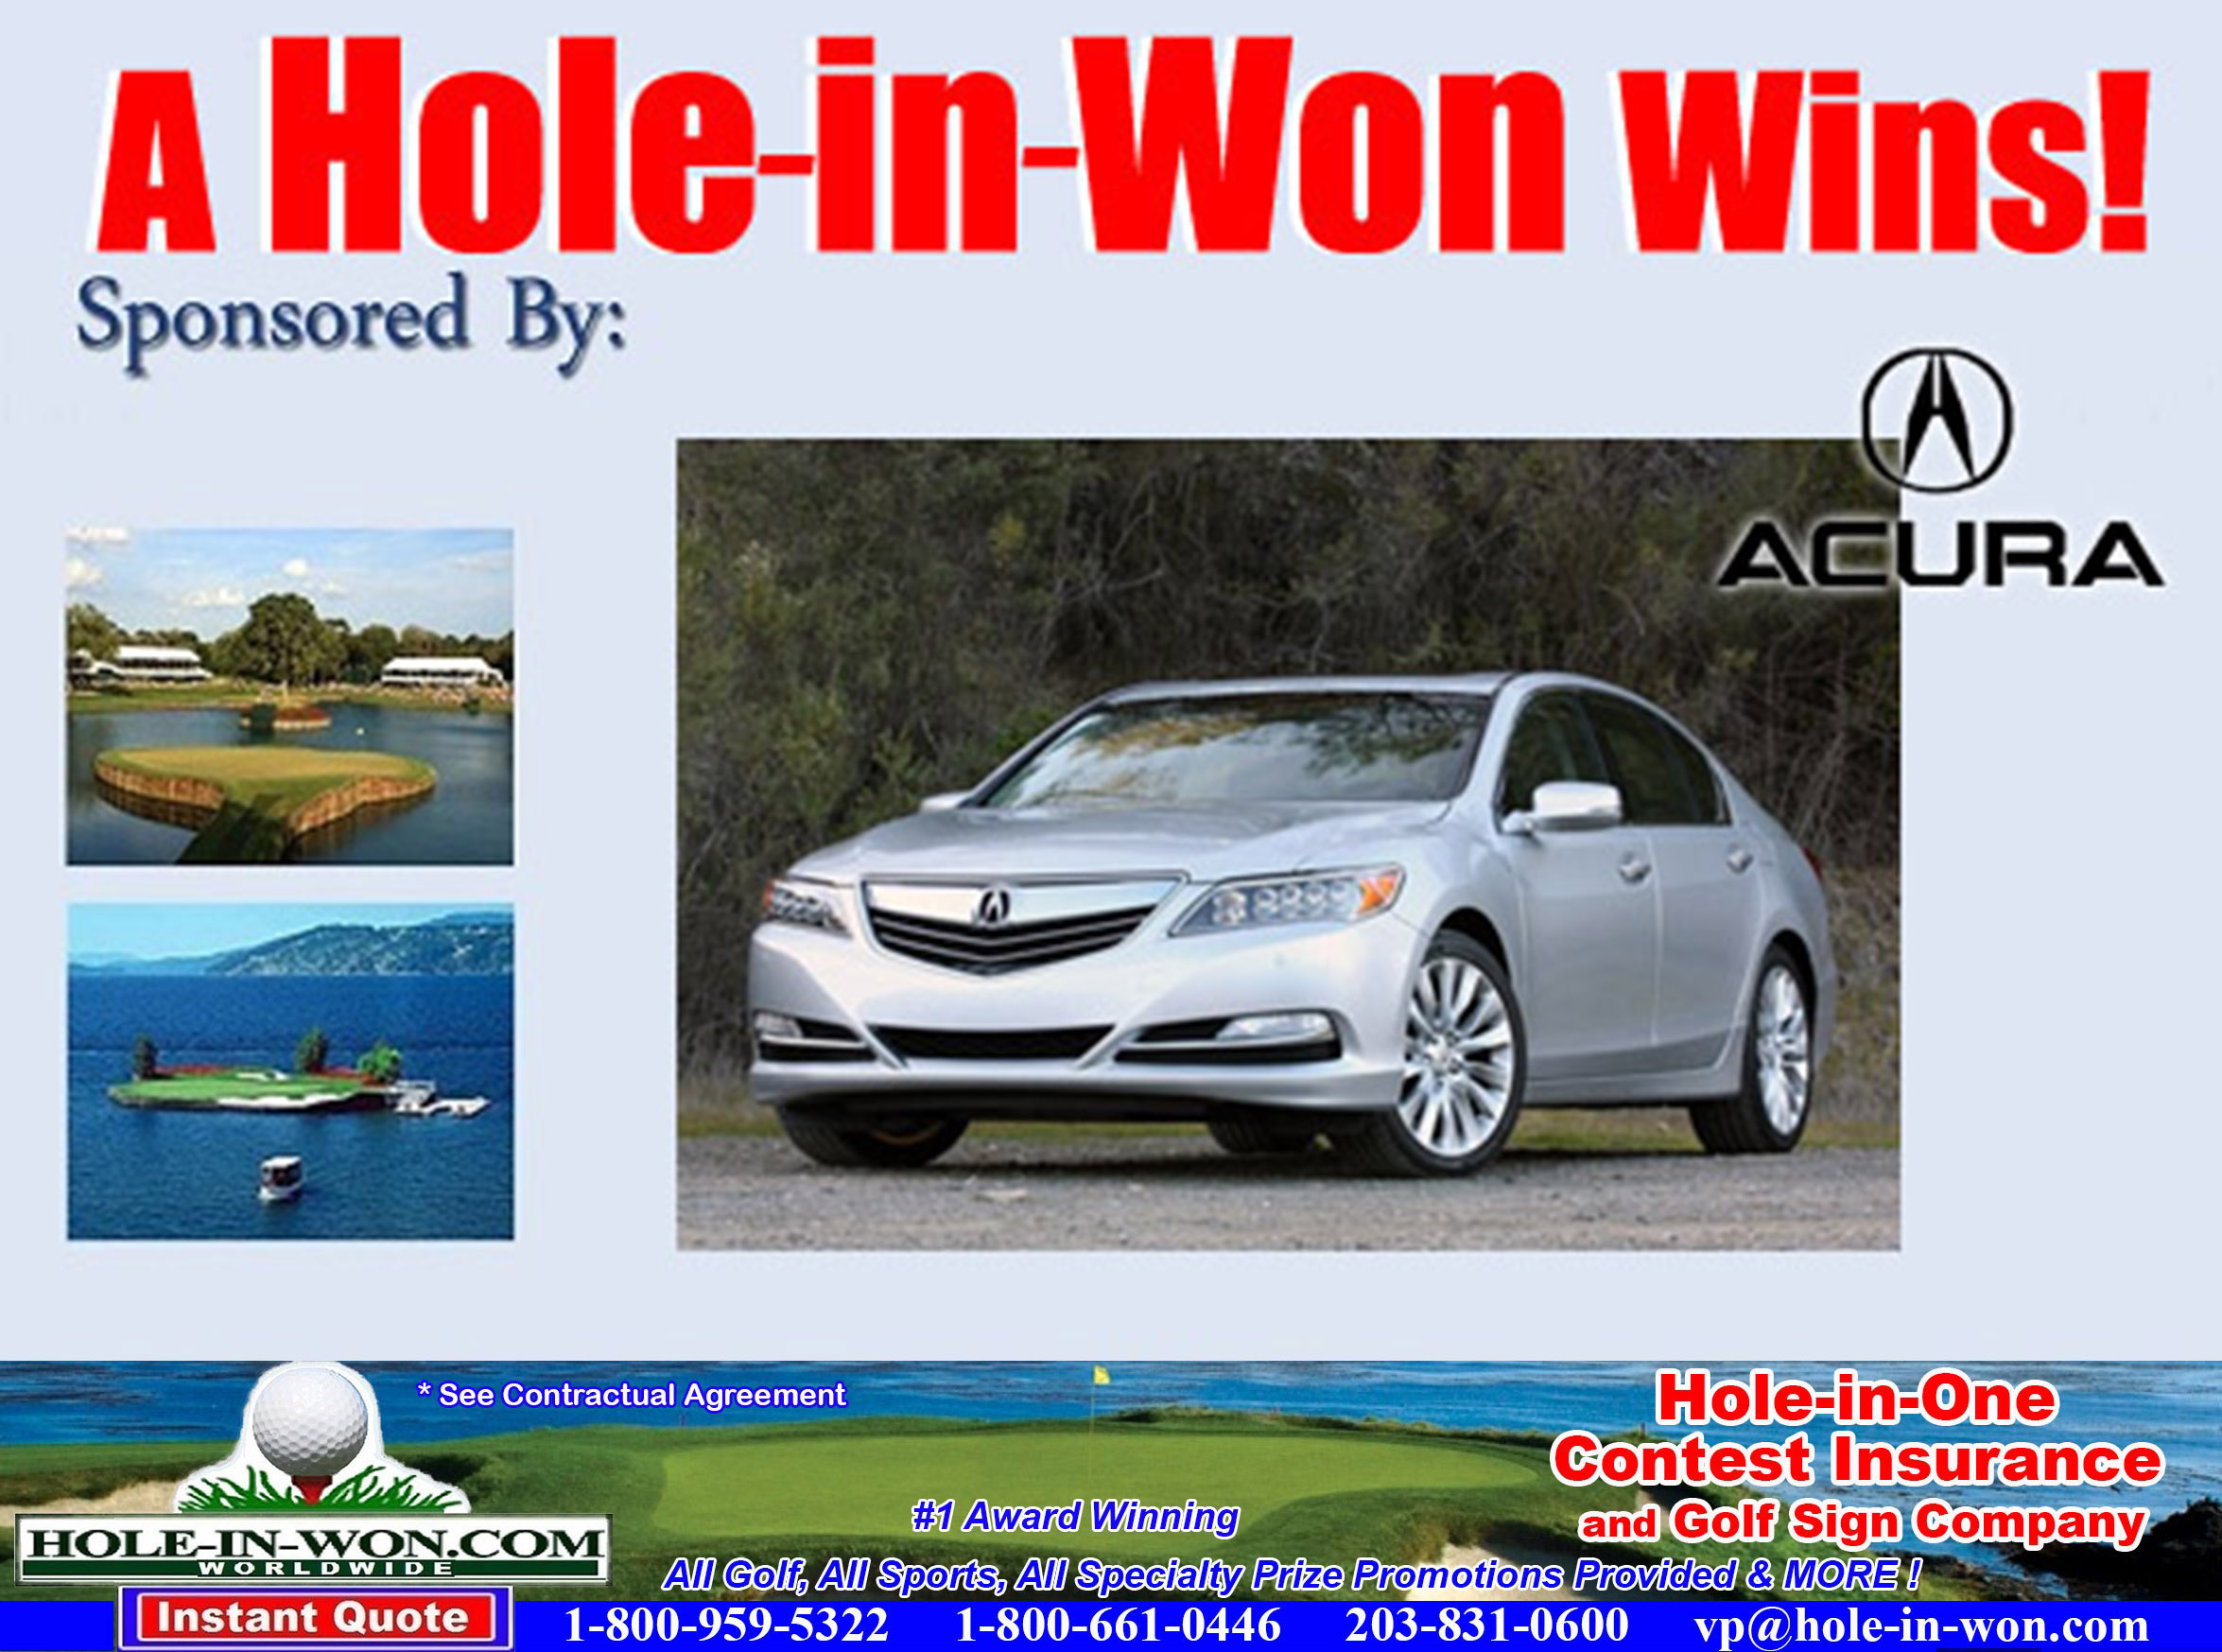 Acura Hole In One Images - Acura insurance